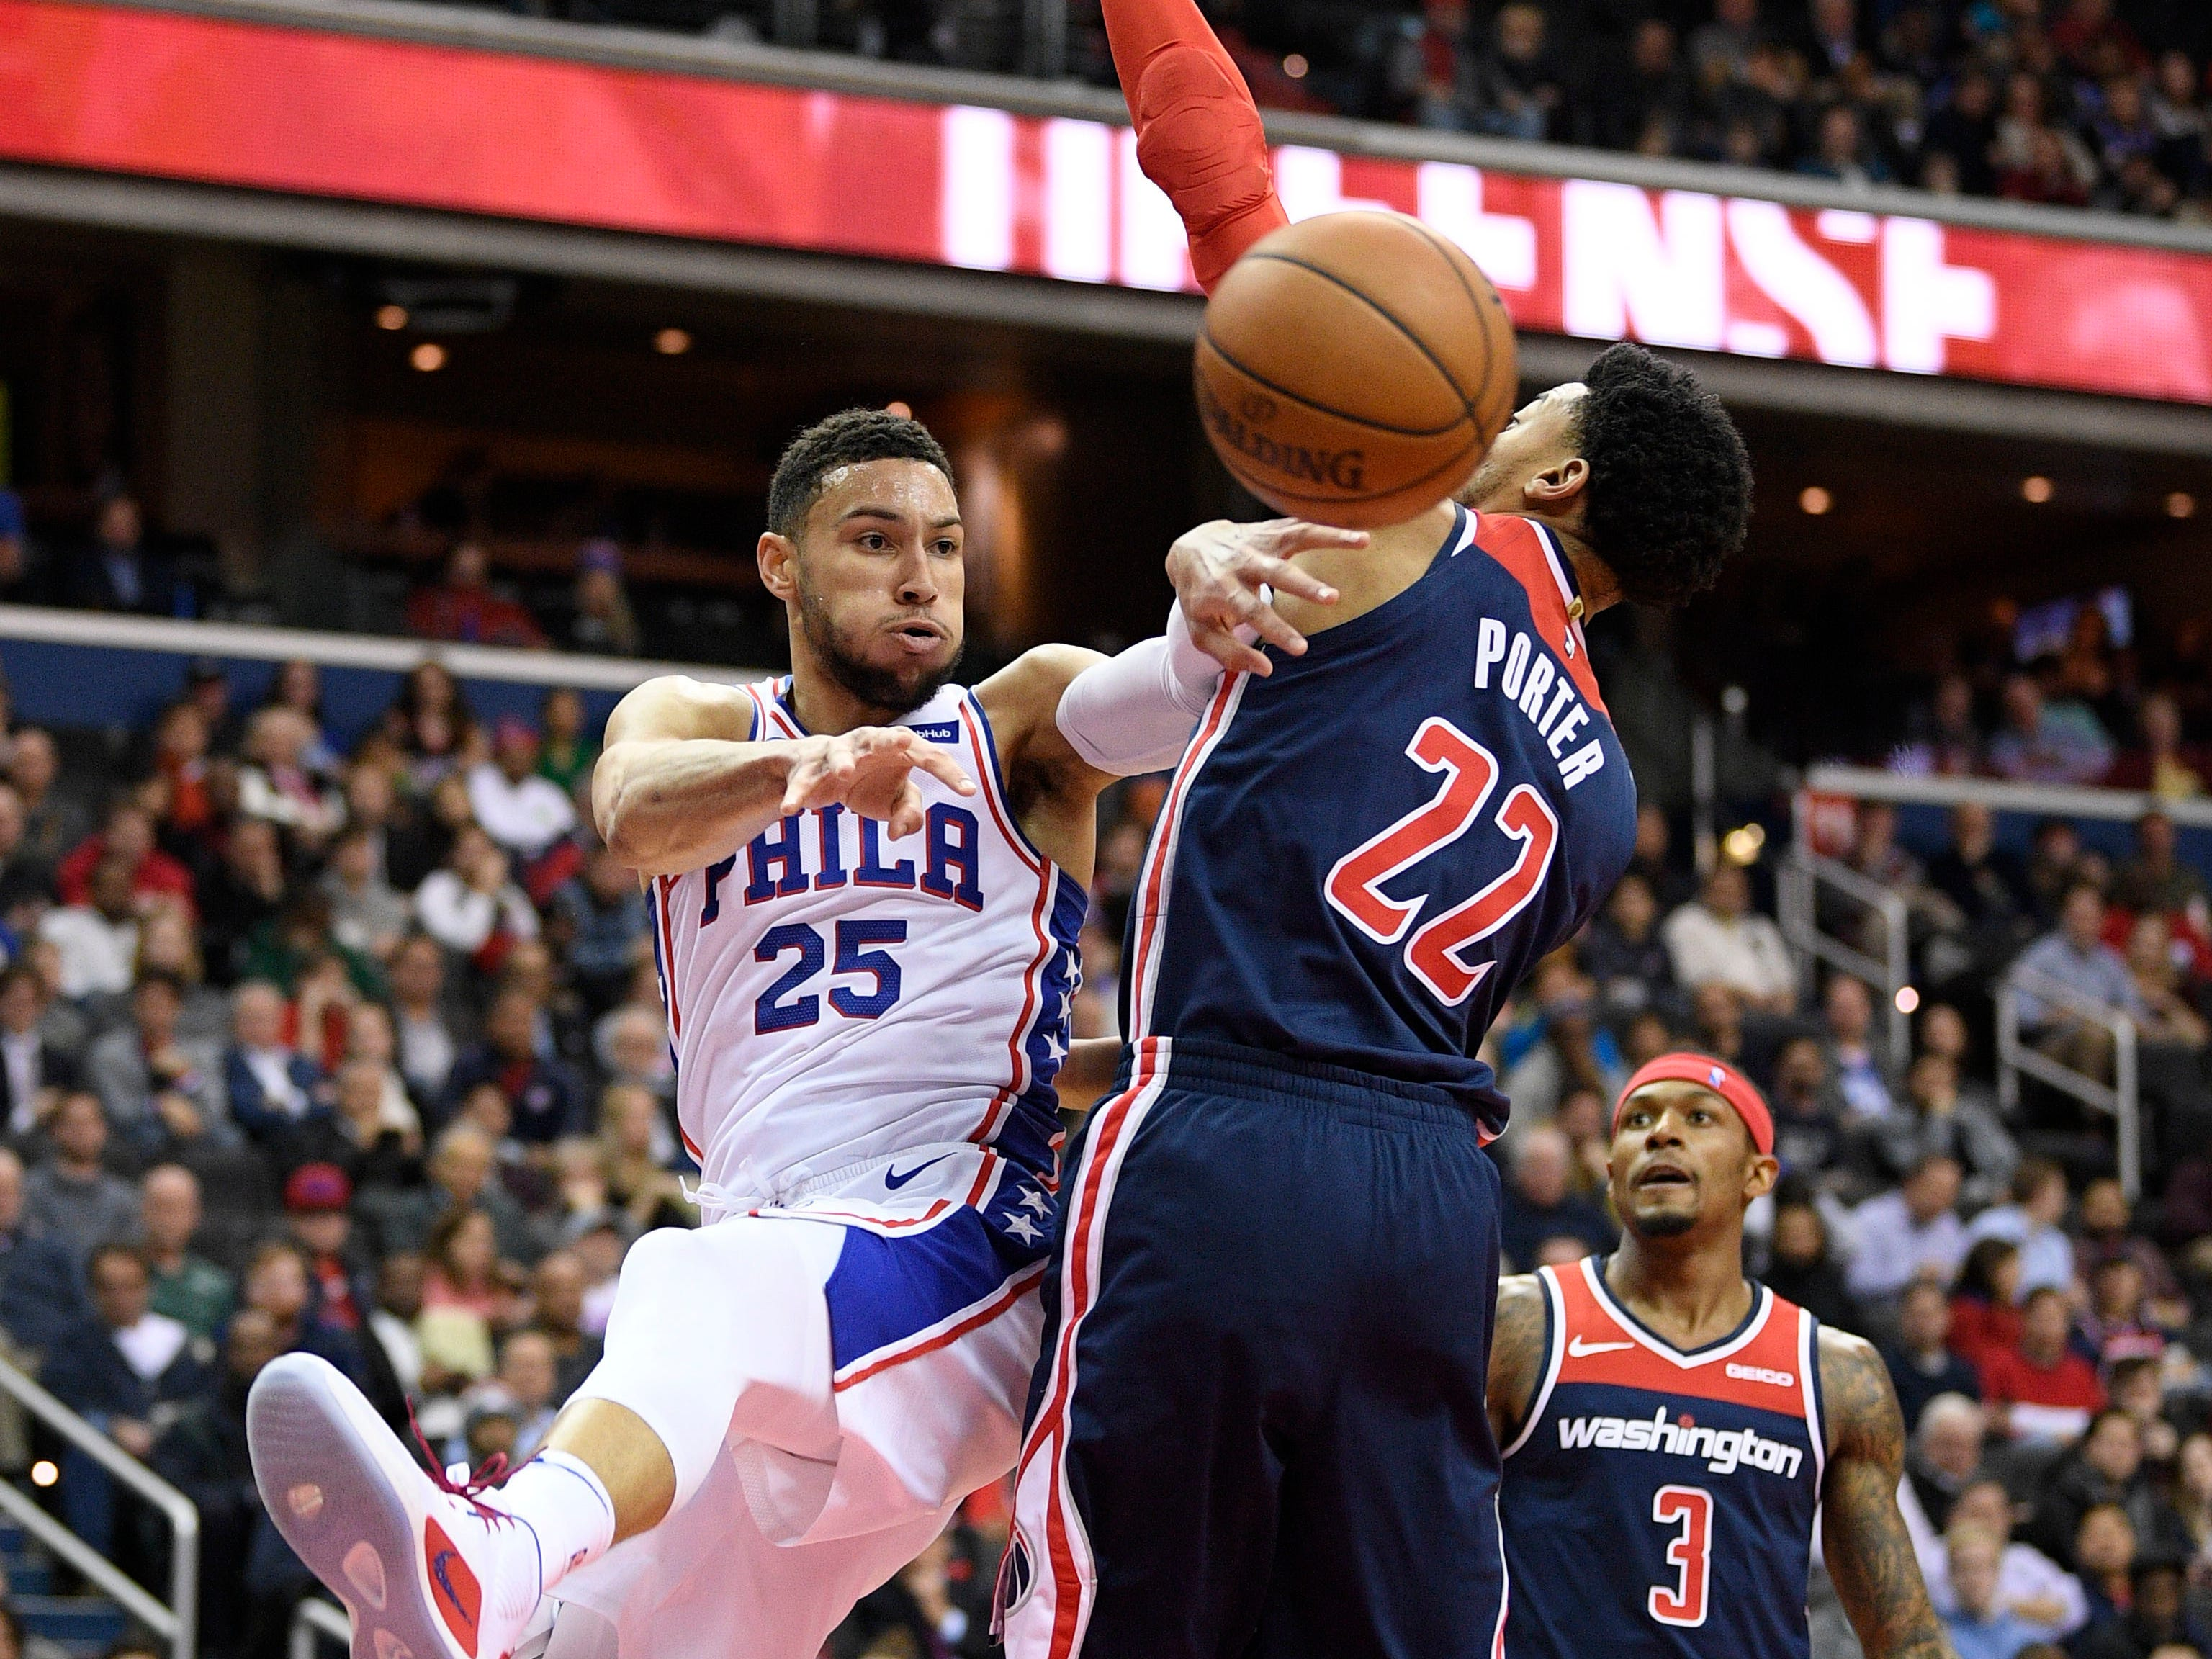 Philadelphia 76ers guard Ben Simmons (25) passes the ball against Washington Wizards forward Otto Porter Jr. (22) and guard Bradley Beal (3) during the first half of an NBA basketball game, Wednesday, Jan. 9, 2019, in Washington. (AP Photo/Nick Wass)